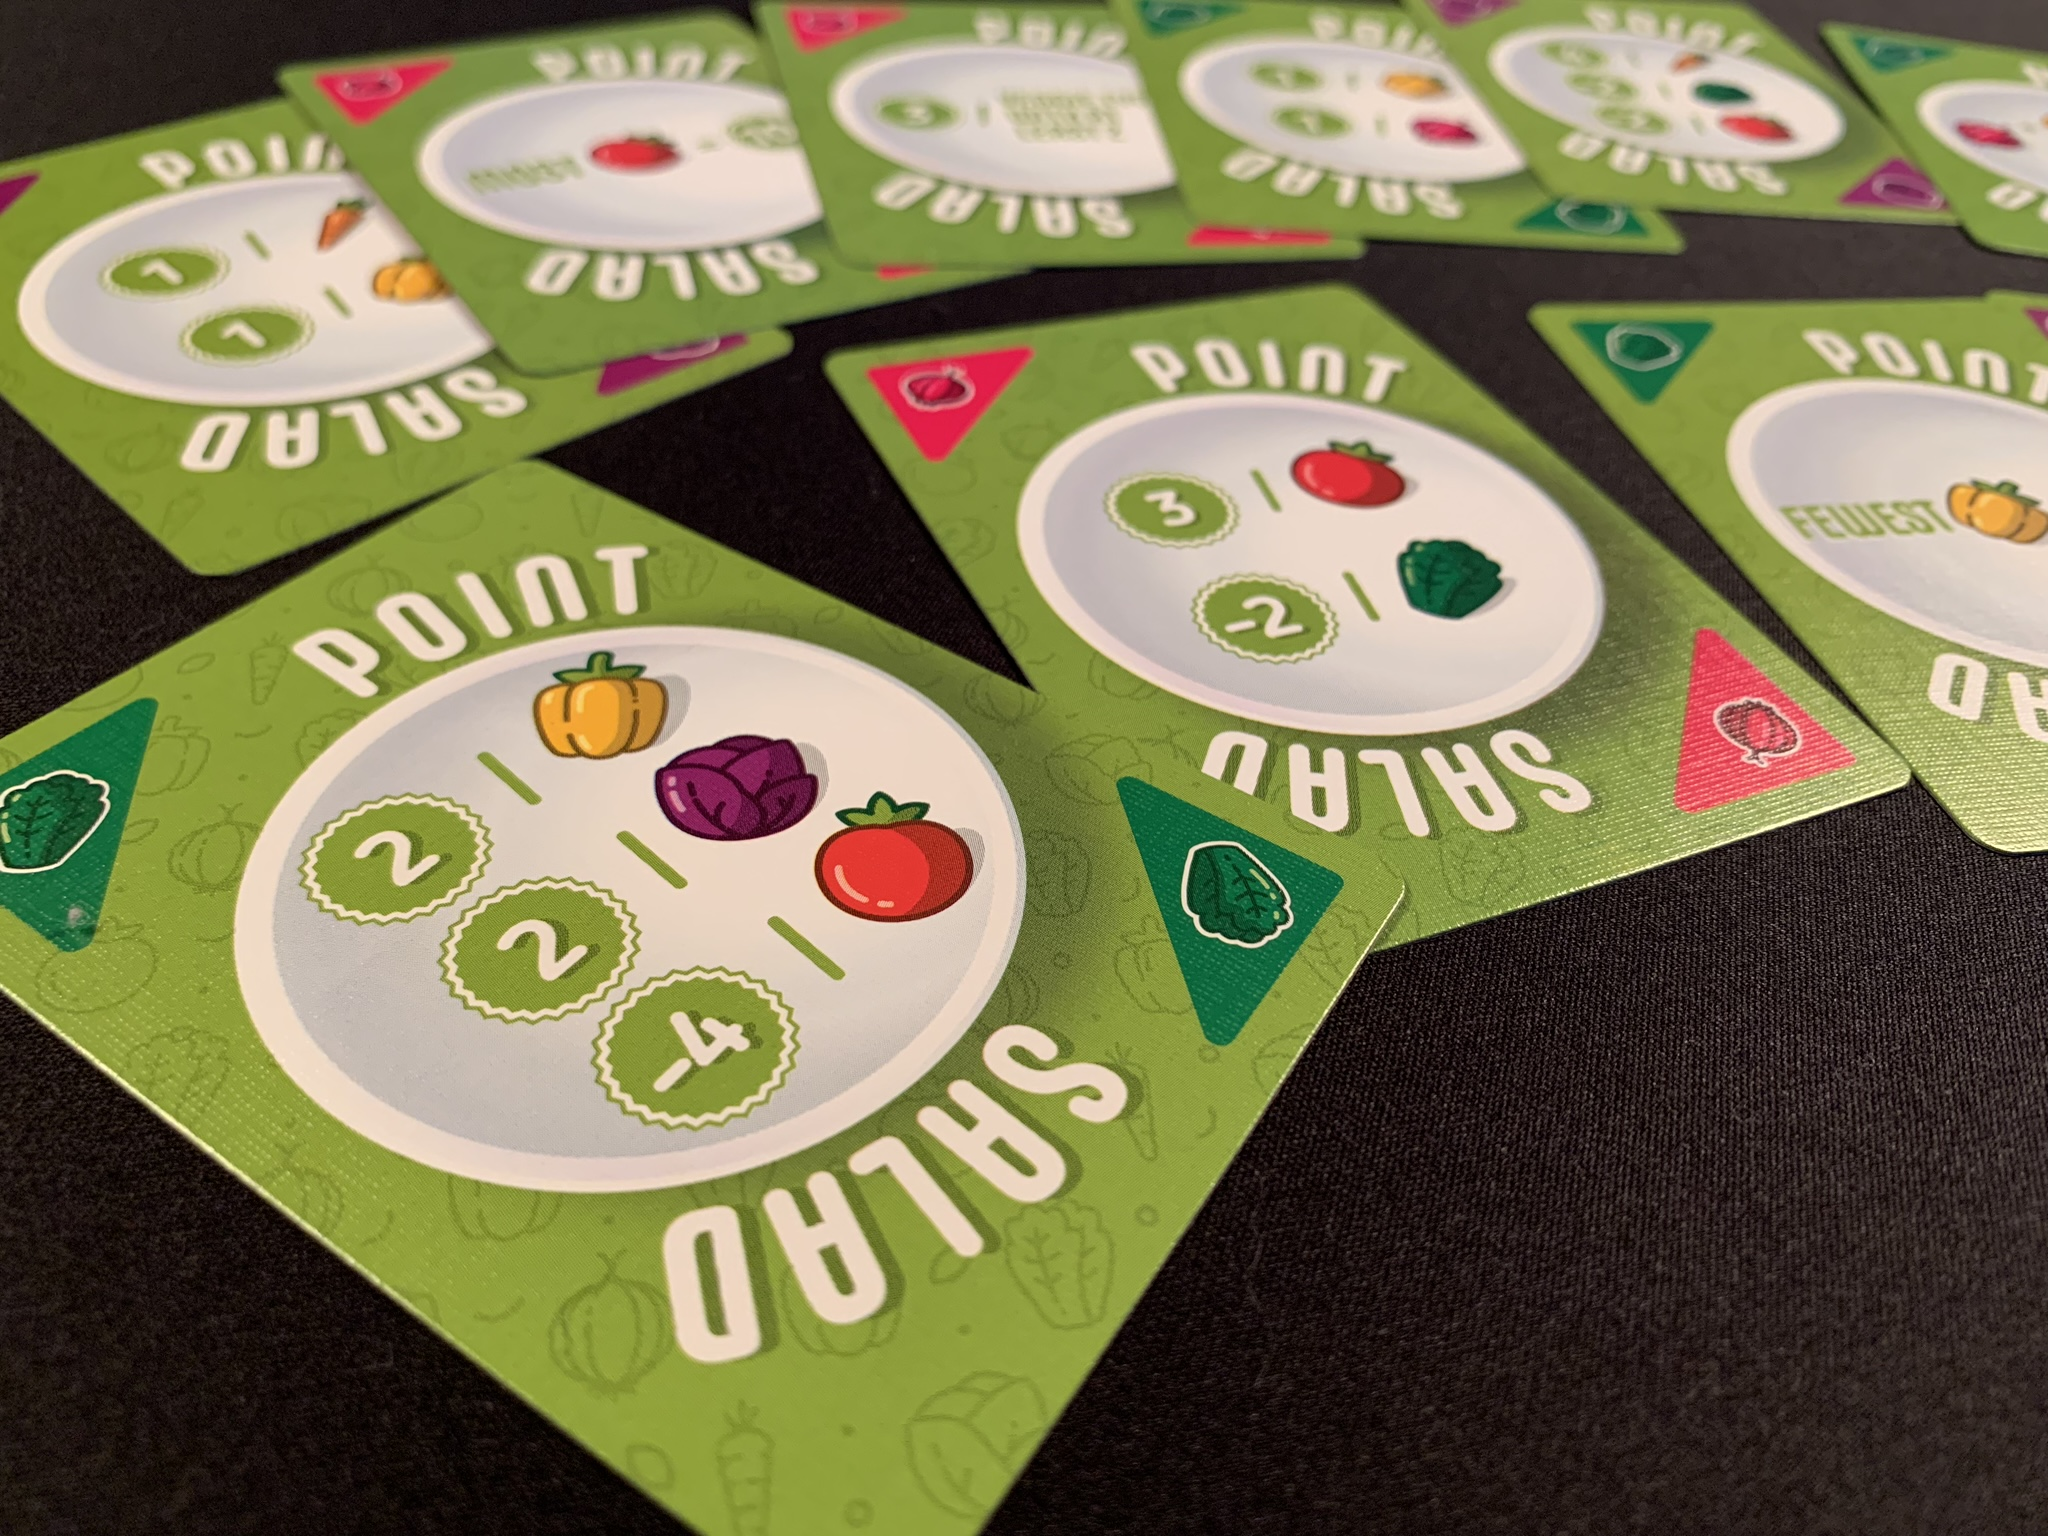 Point side of the cards, vegetables on the other side